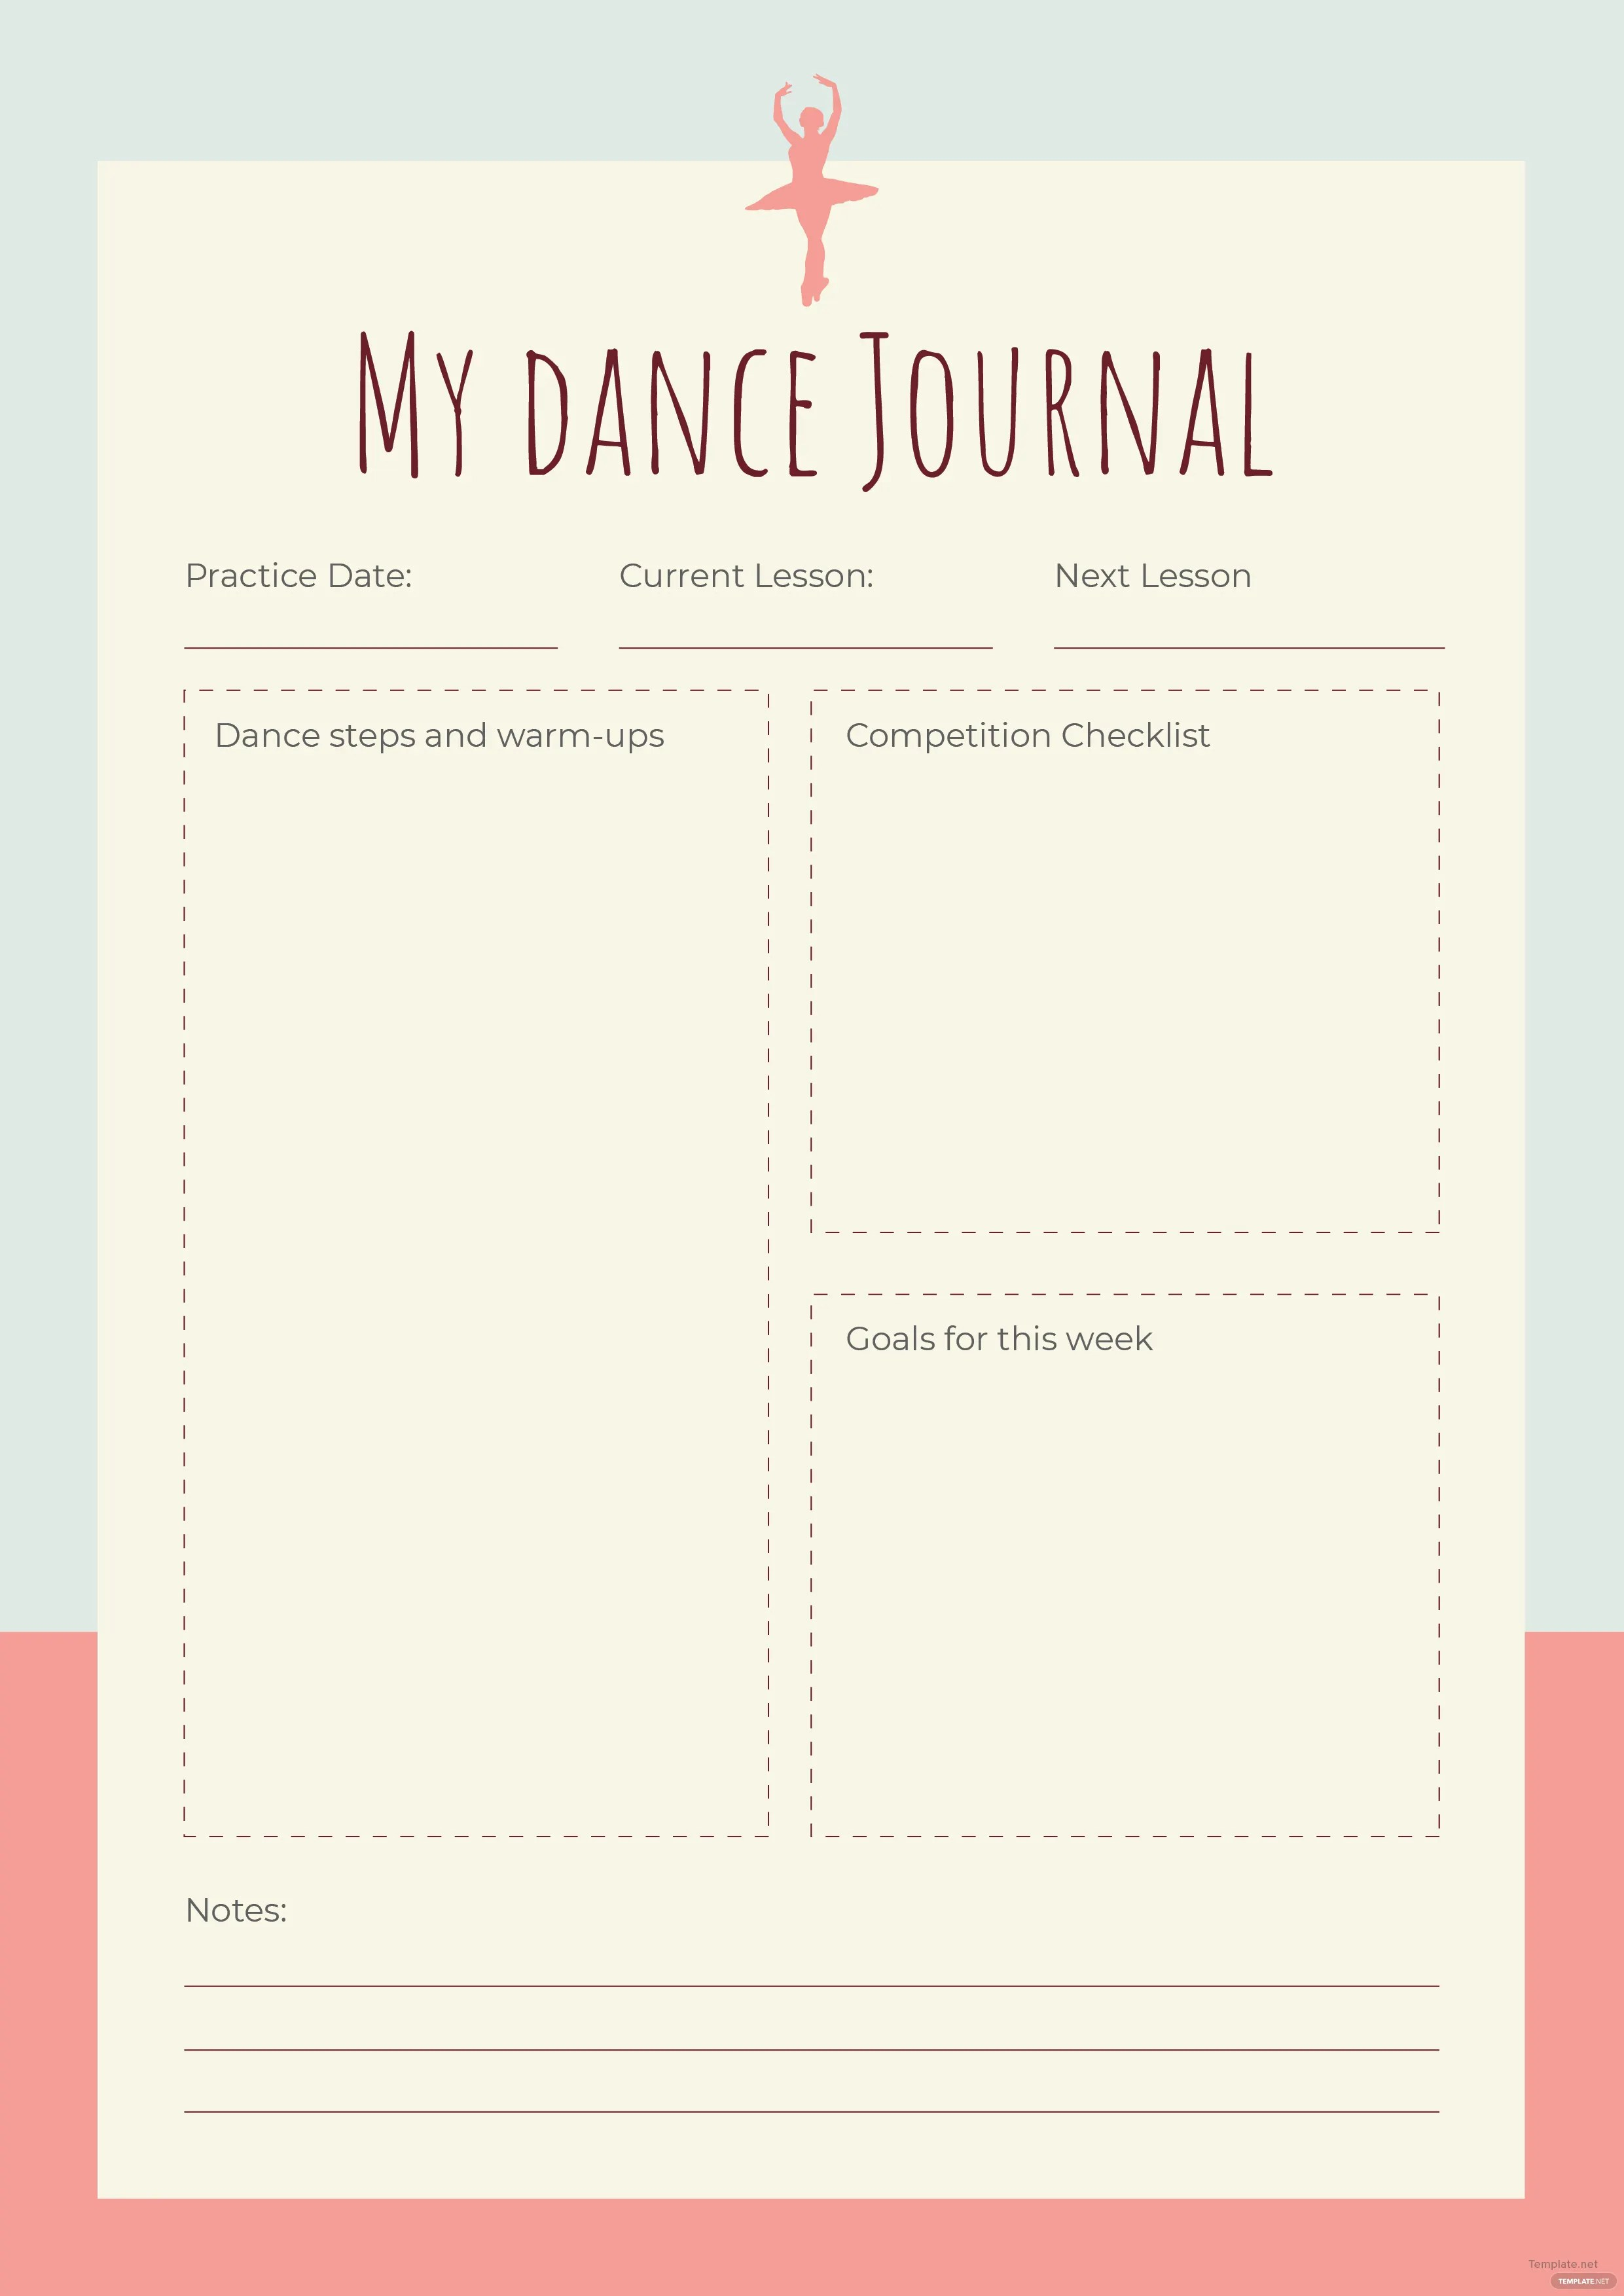 Free Dance Journal Template In Adobe Photoshop Illustrator InDesign Microsoft Word Publisher